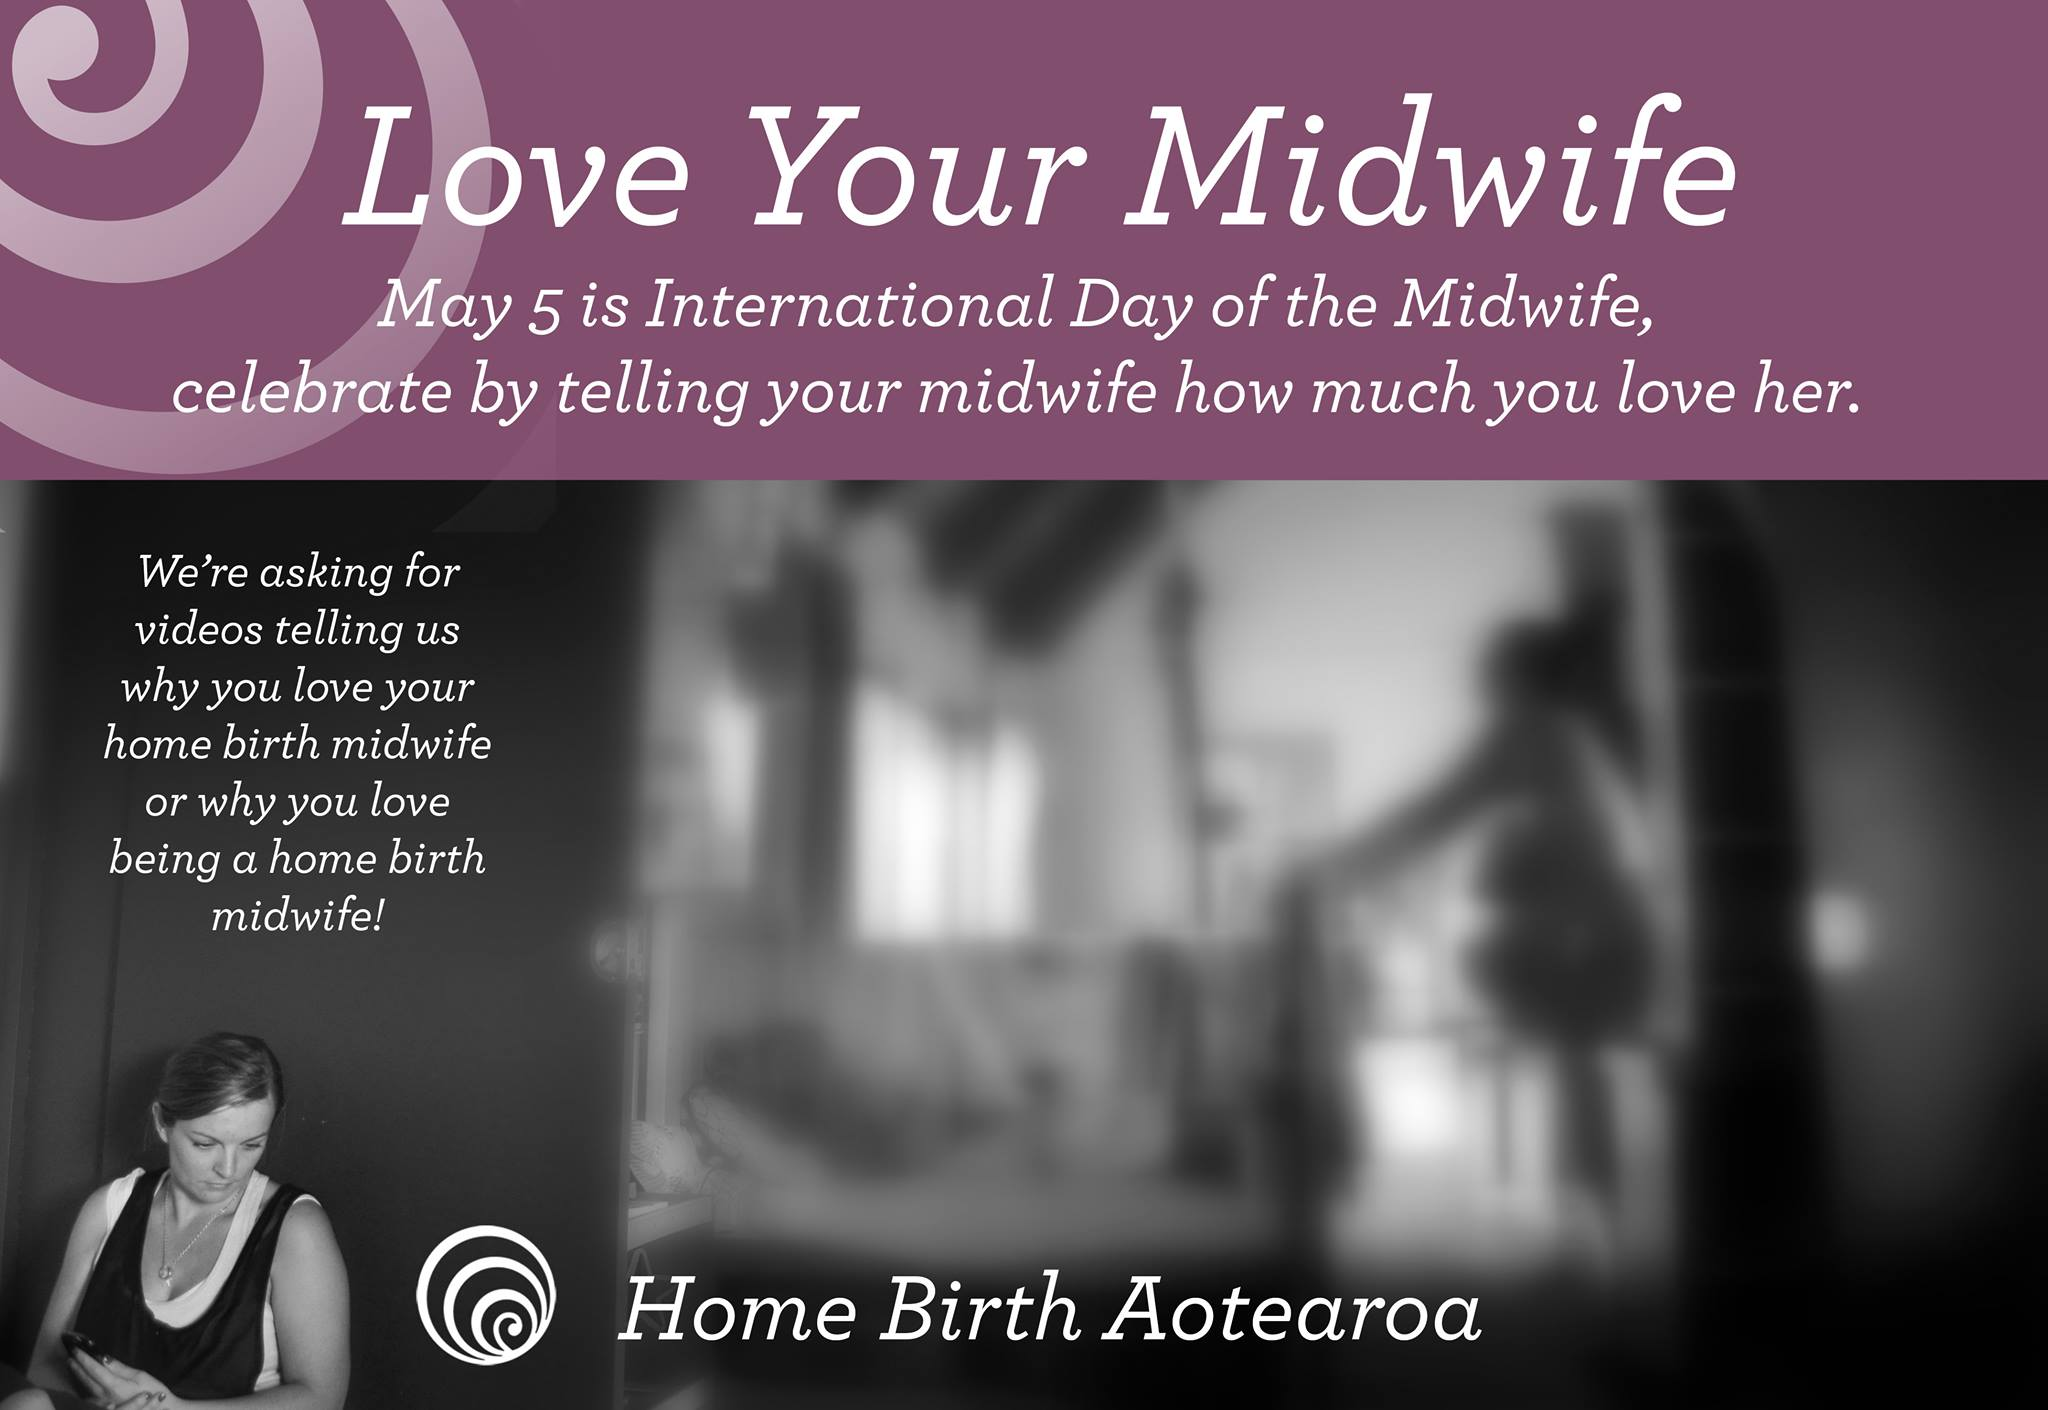 Love Your Midwife!